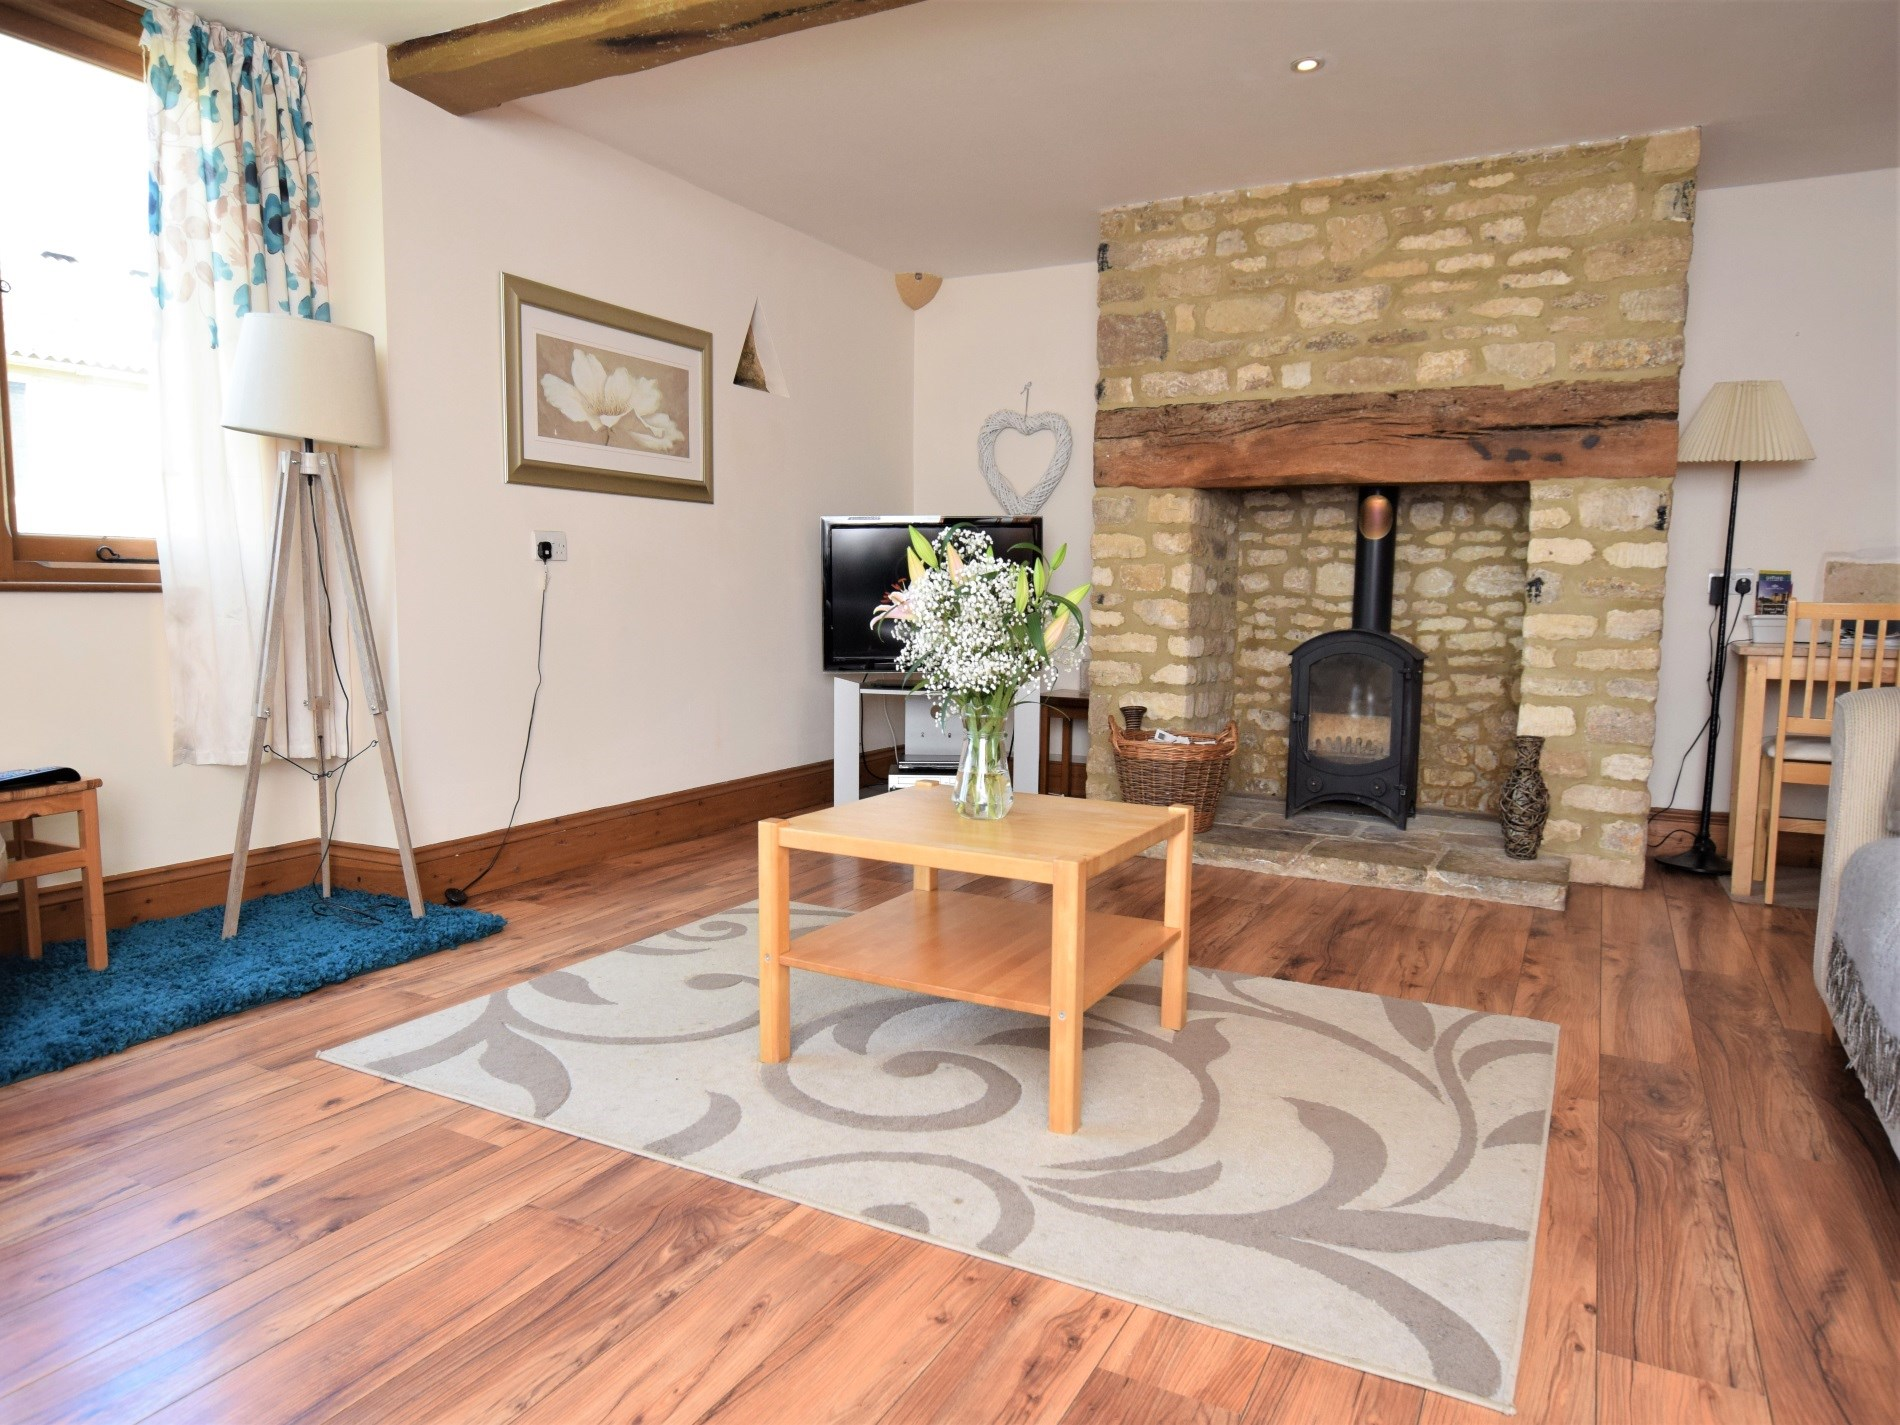 Light the wood burner for a cosy evening in by the fire